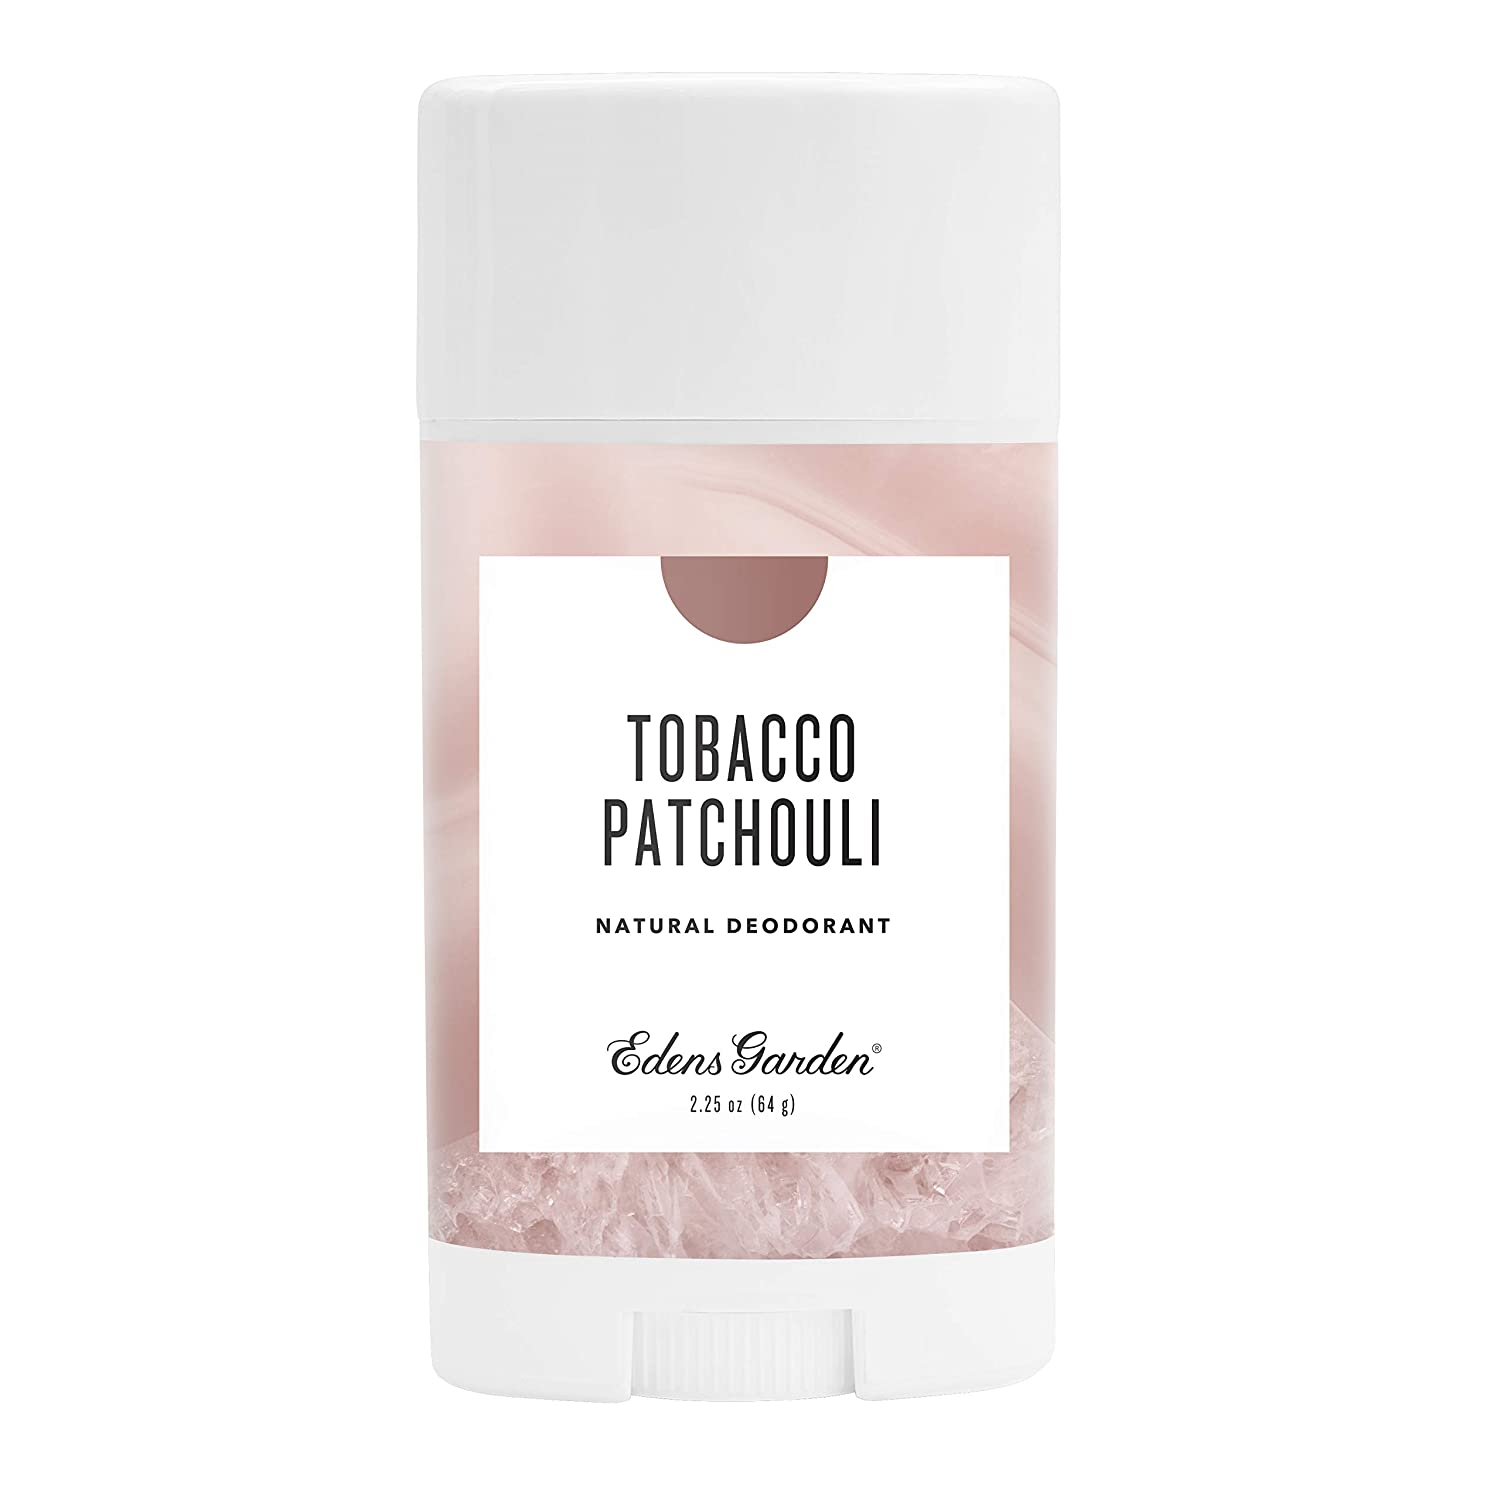 Edens Garden Tobacco Patchouli Natural Deodorant, Aluminum & Baking Soda Free (For Normal & Sensitive Skin), Made With Essential Oils, Vegan, For Men & Women, 2.25 oz